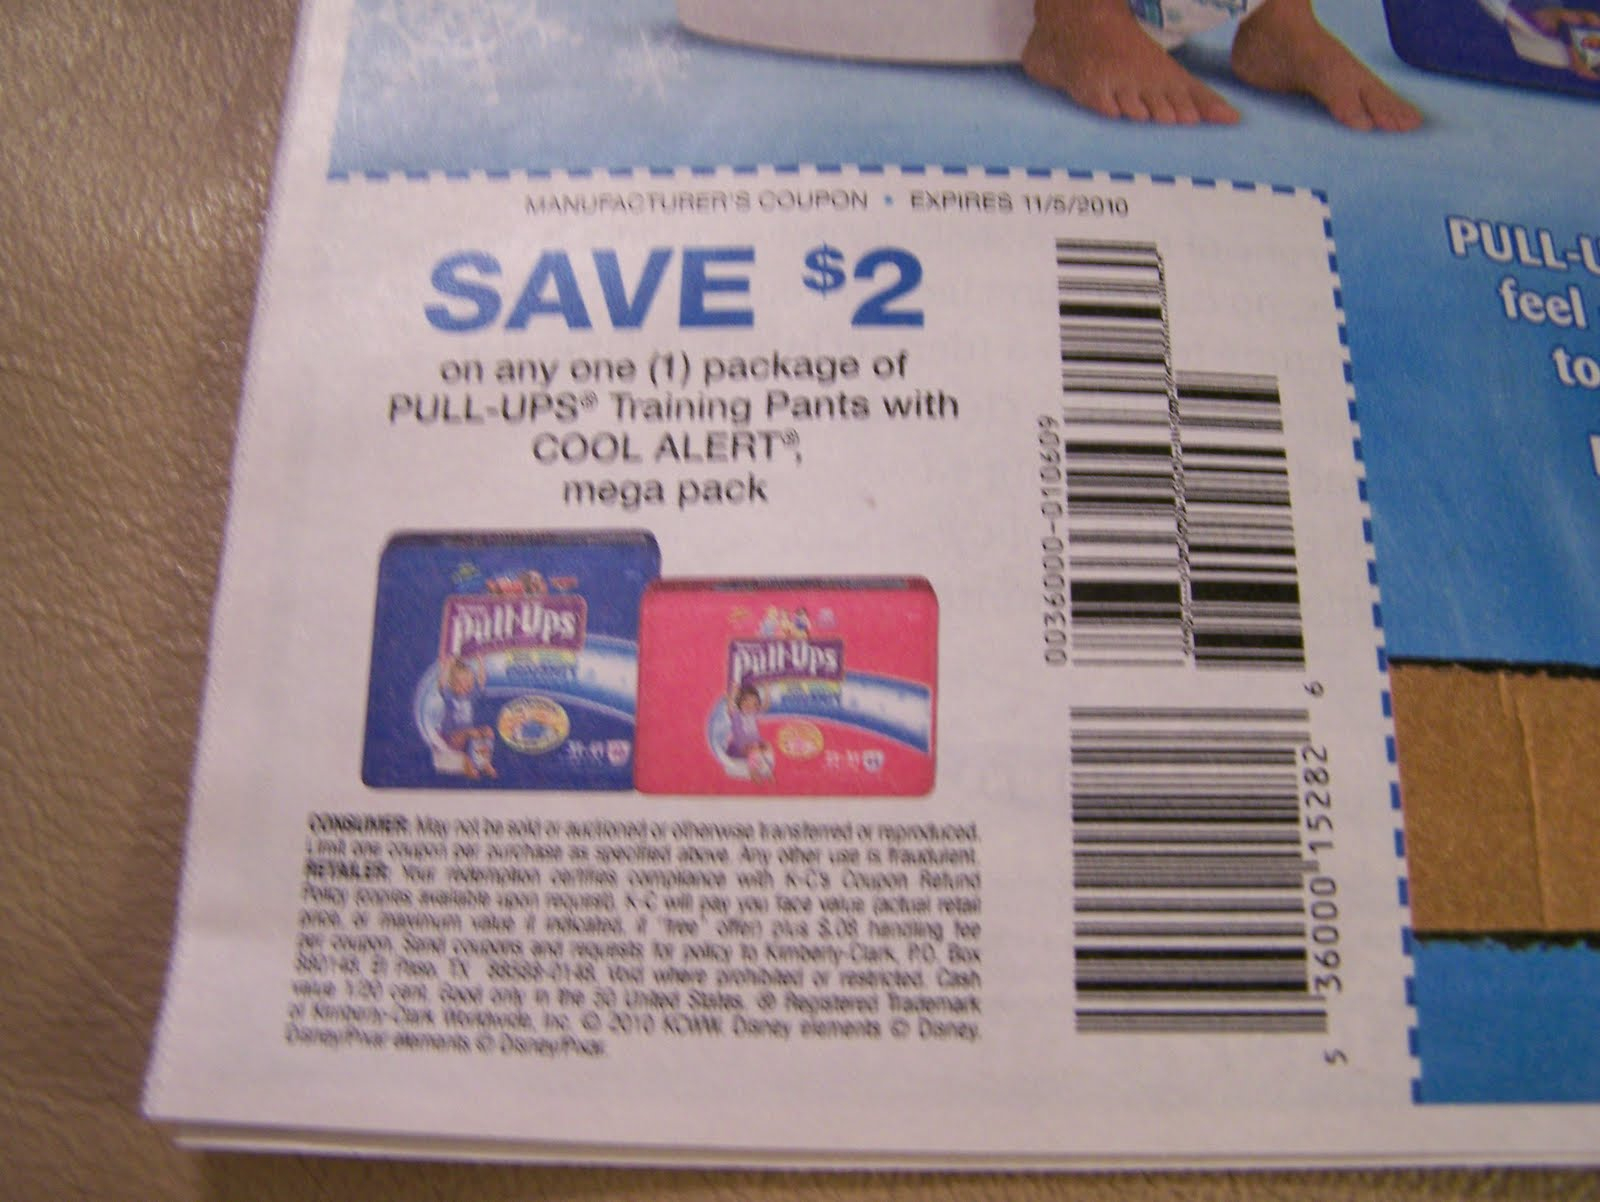 Centsible Savings: 4 Readers Win (4) $2.00/1 Pullups Coupons - Free Printable Coupons For Huggies Pull Ups